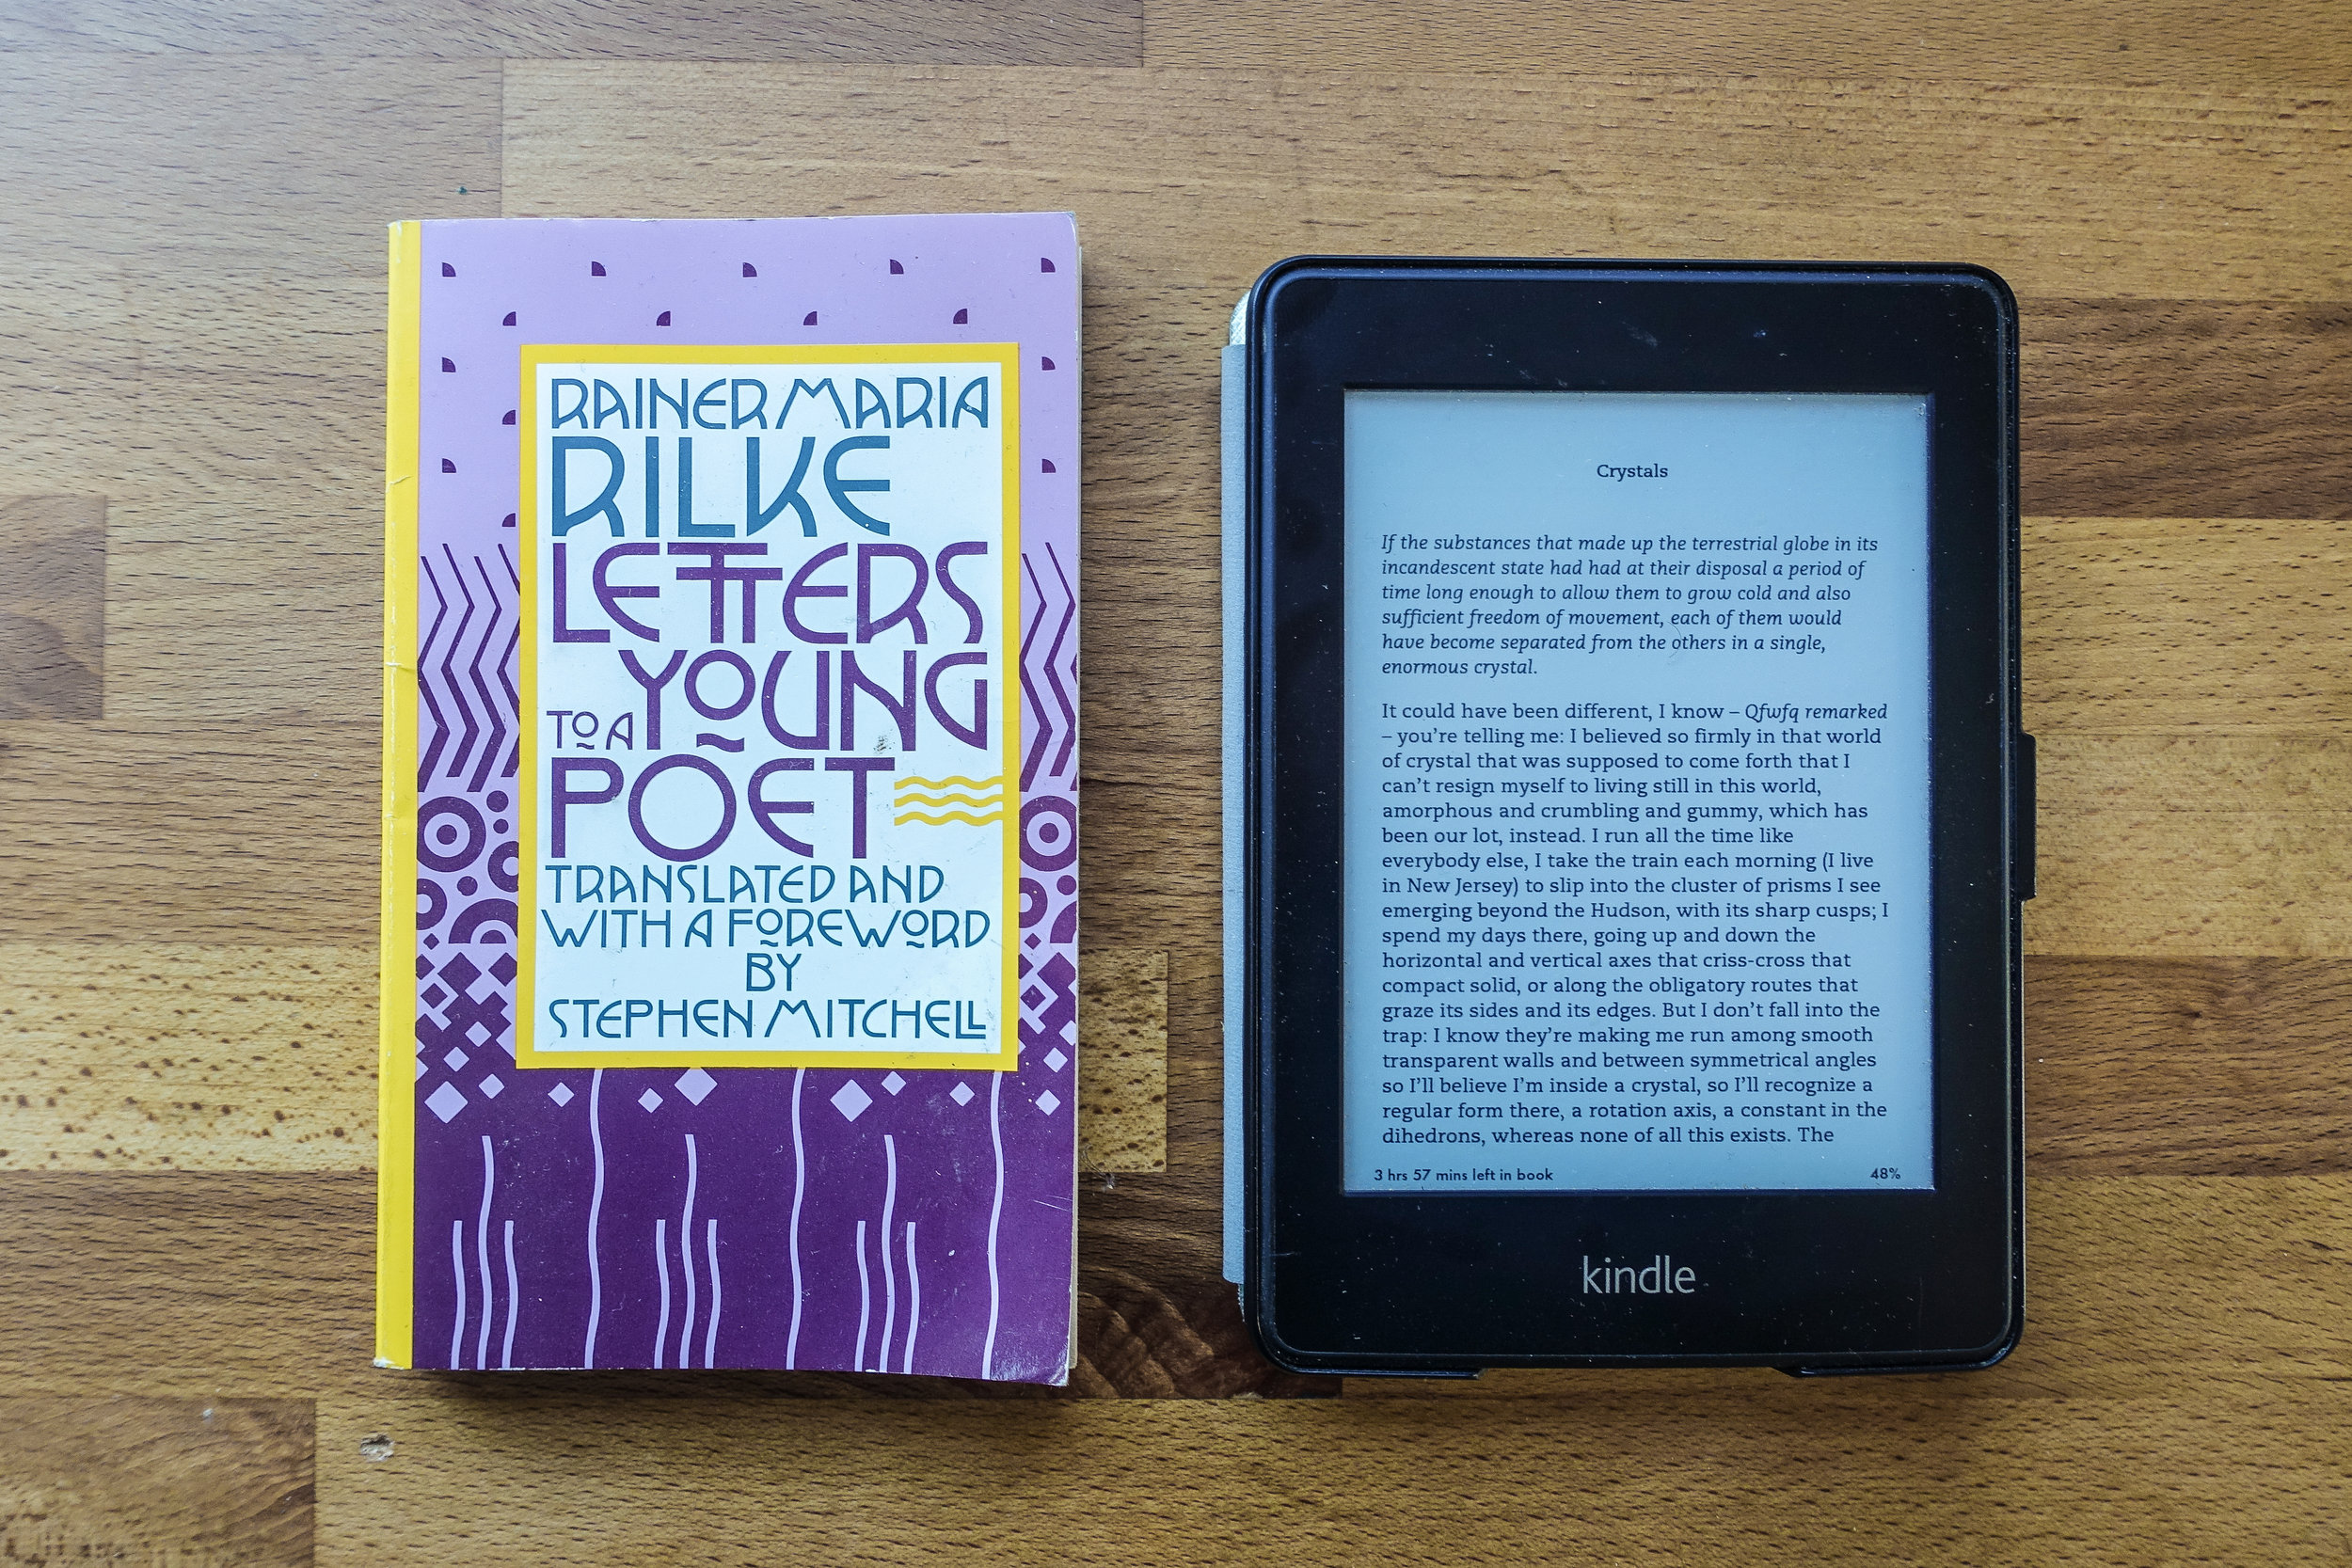 The Kindle Paperwhite is just about the same height, width, and depth as Rainer Maria Rilke's (very small) 'Letters to a Young Poet,' though the Kindle is heavier than this particular paperback.